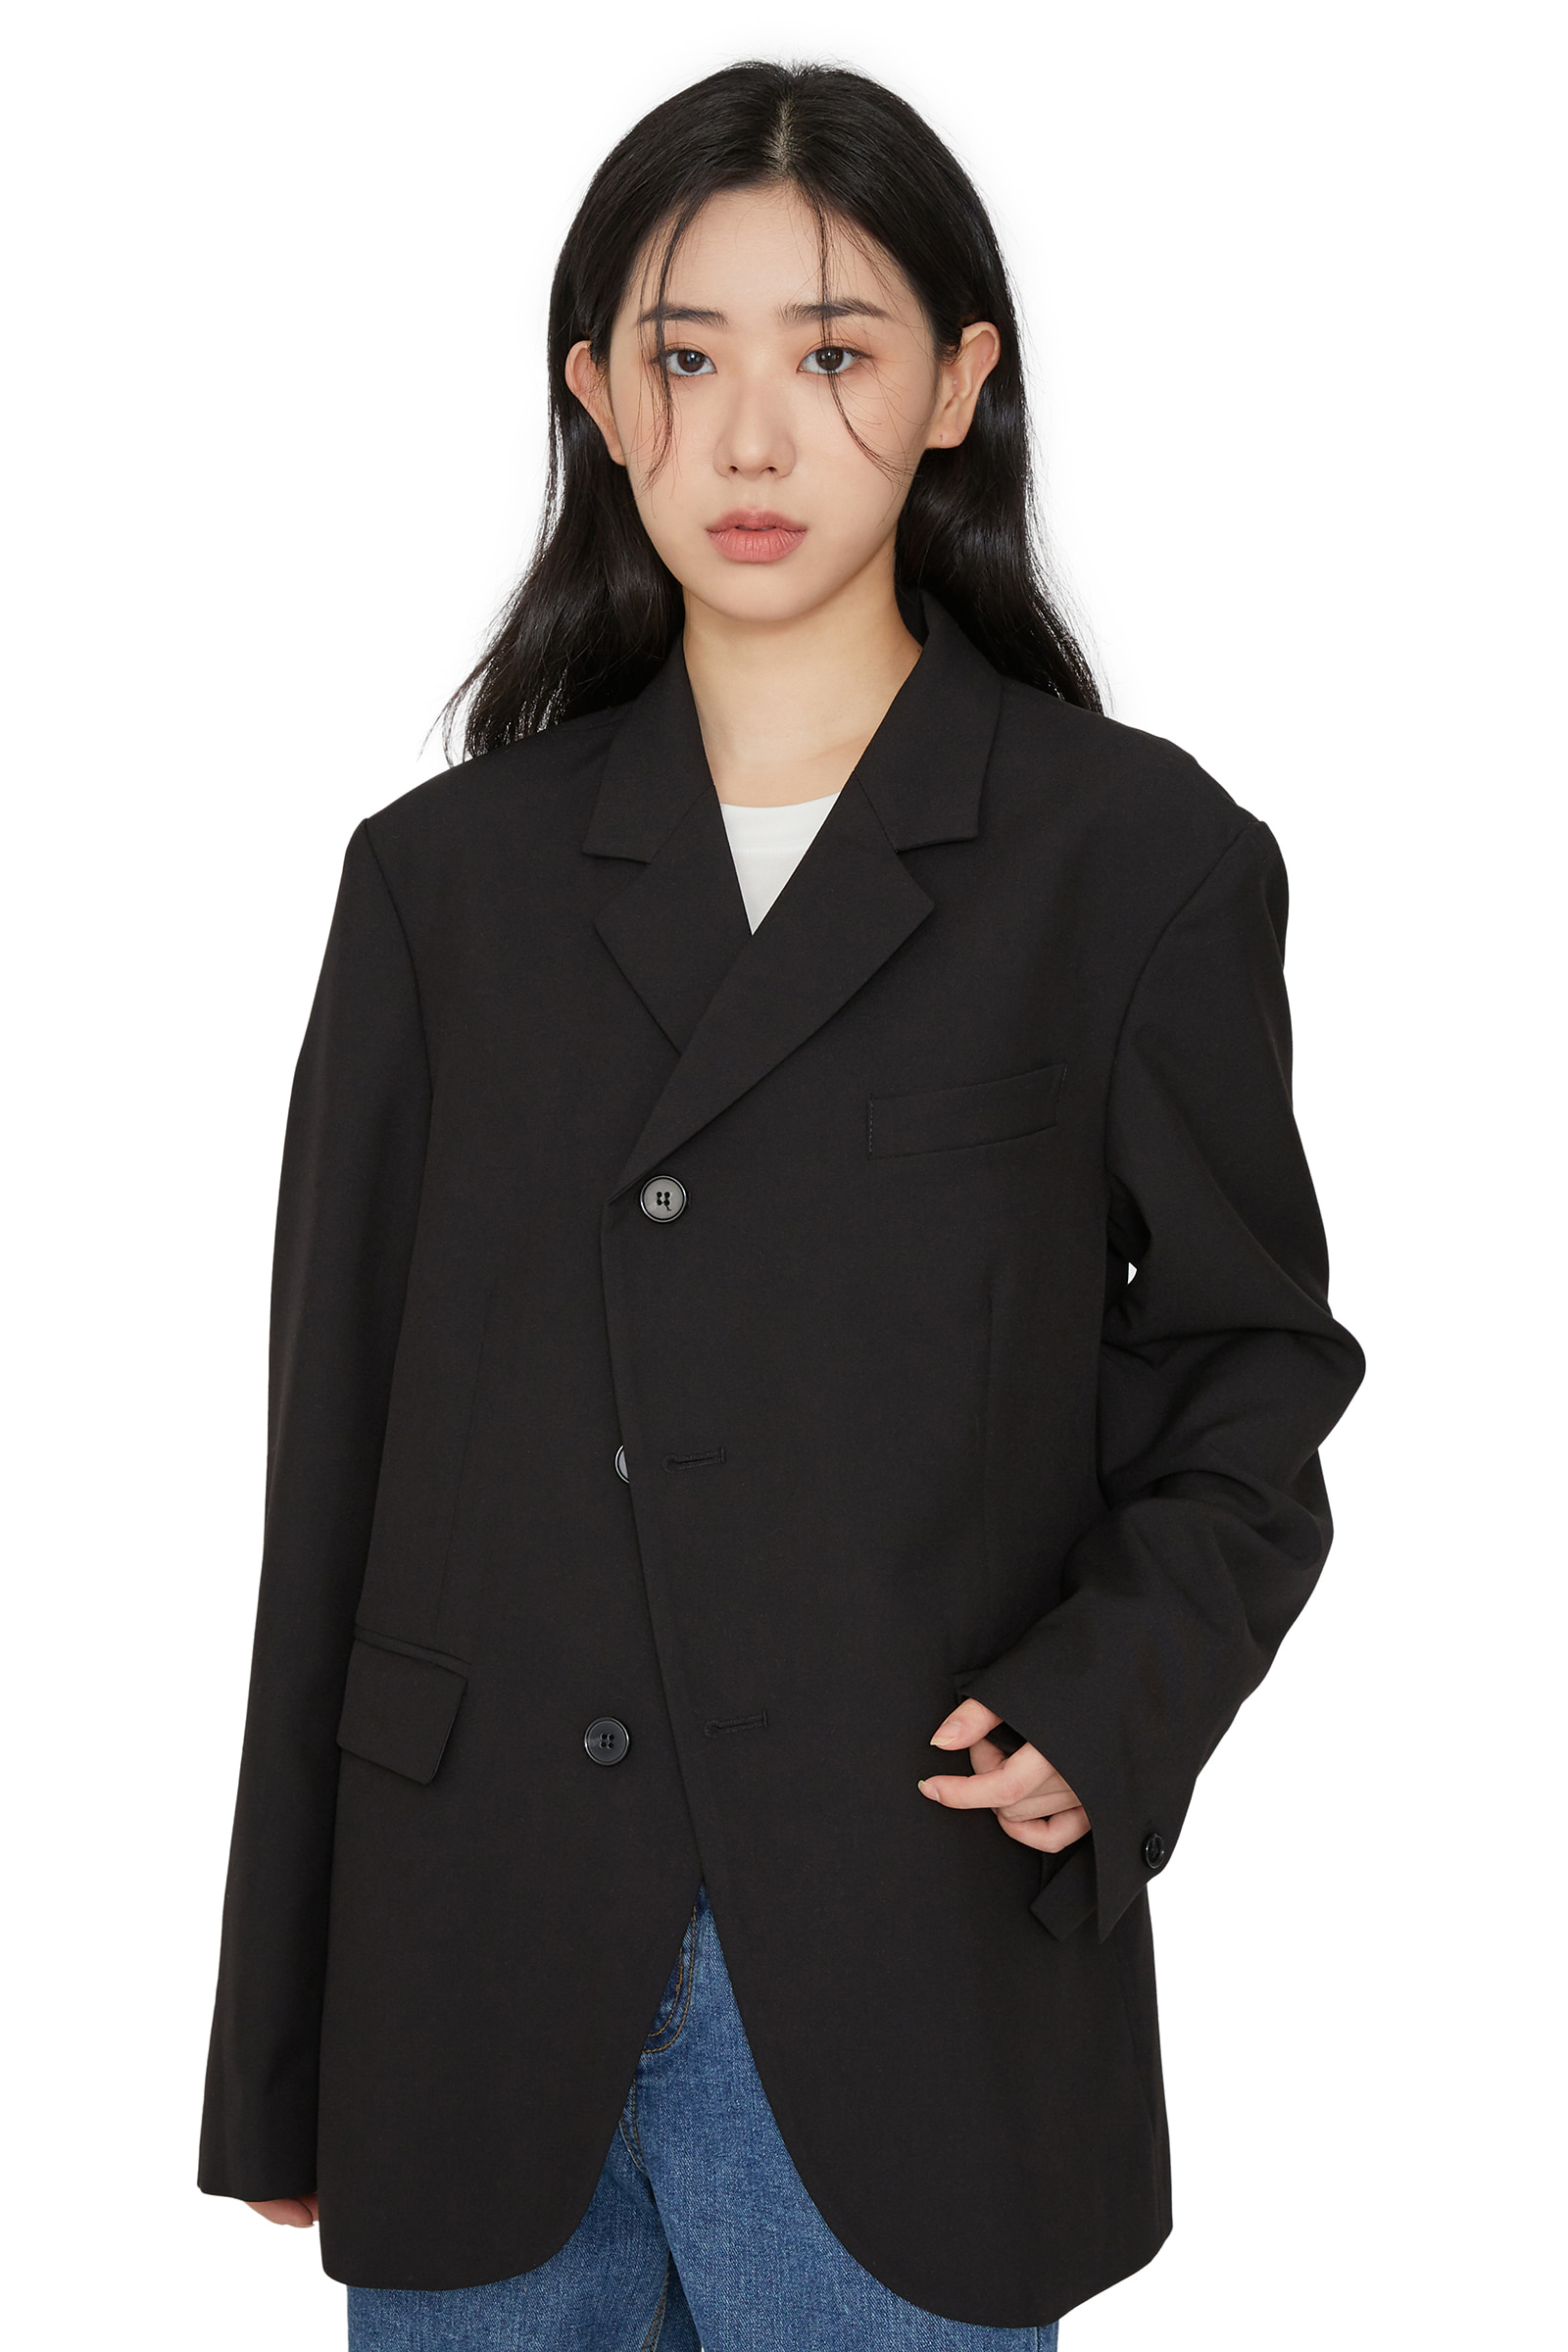 Unisex slash button blazer